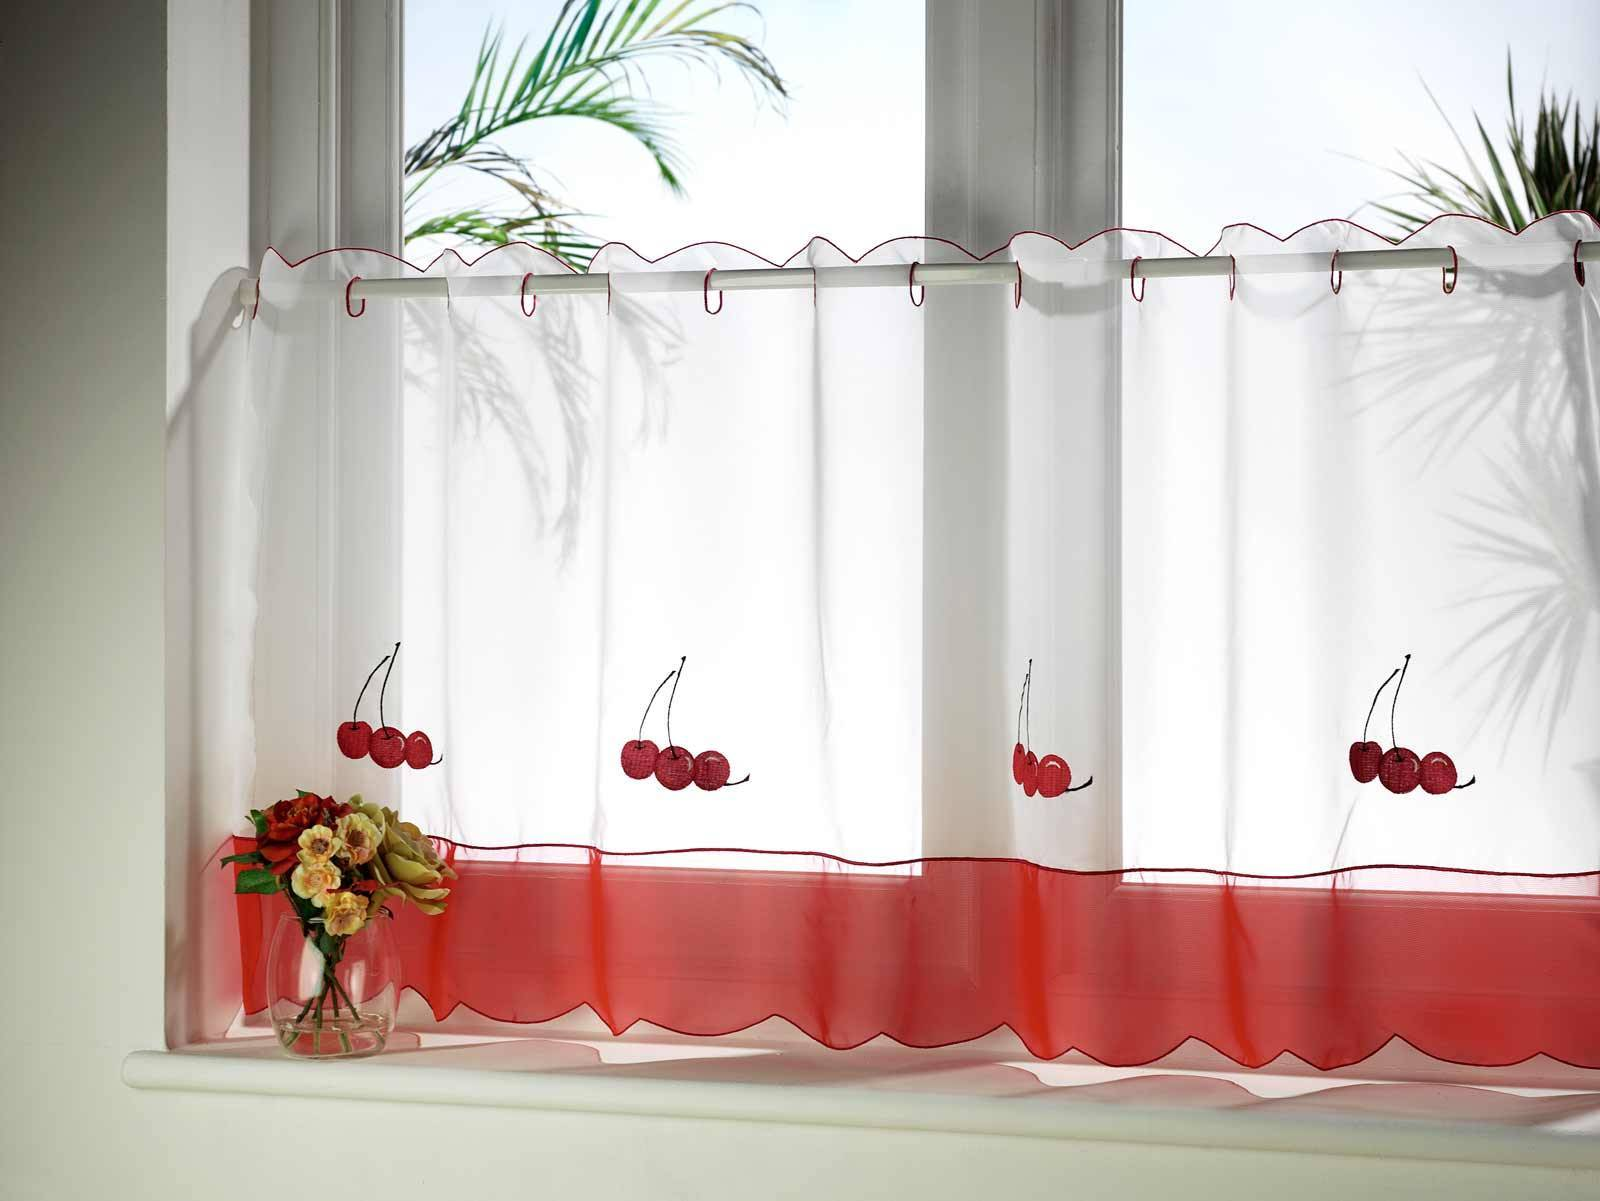 marvelous kitchen window ledge decorating ideas small curtains modern photos farmhouse country style and valances garden drapes best pictures set bay treatments designs black sill